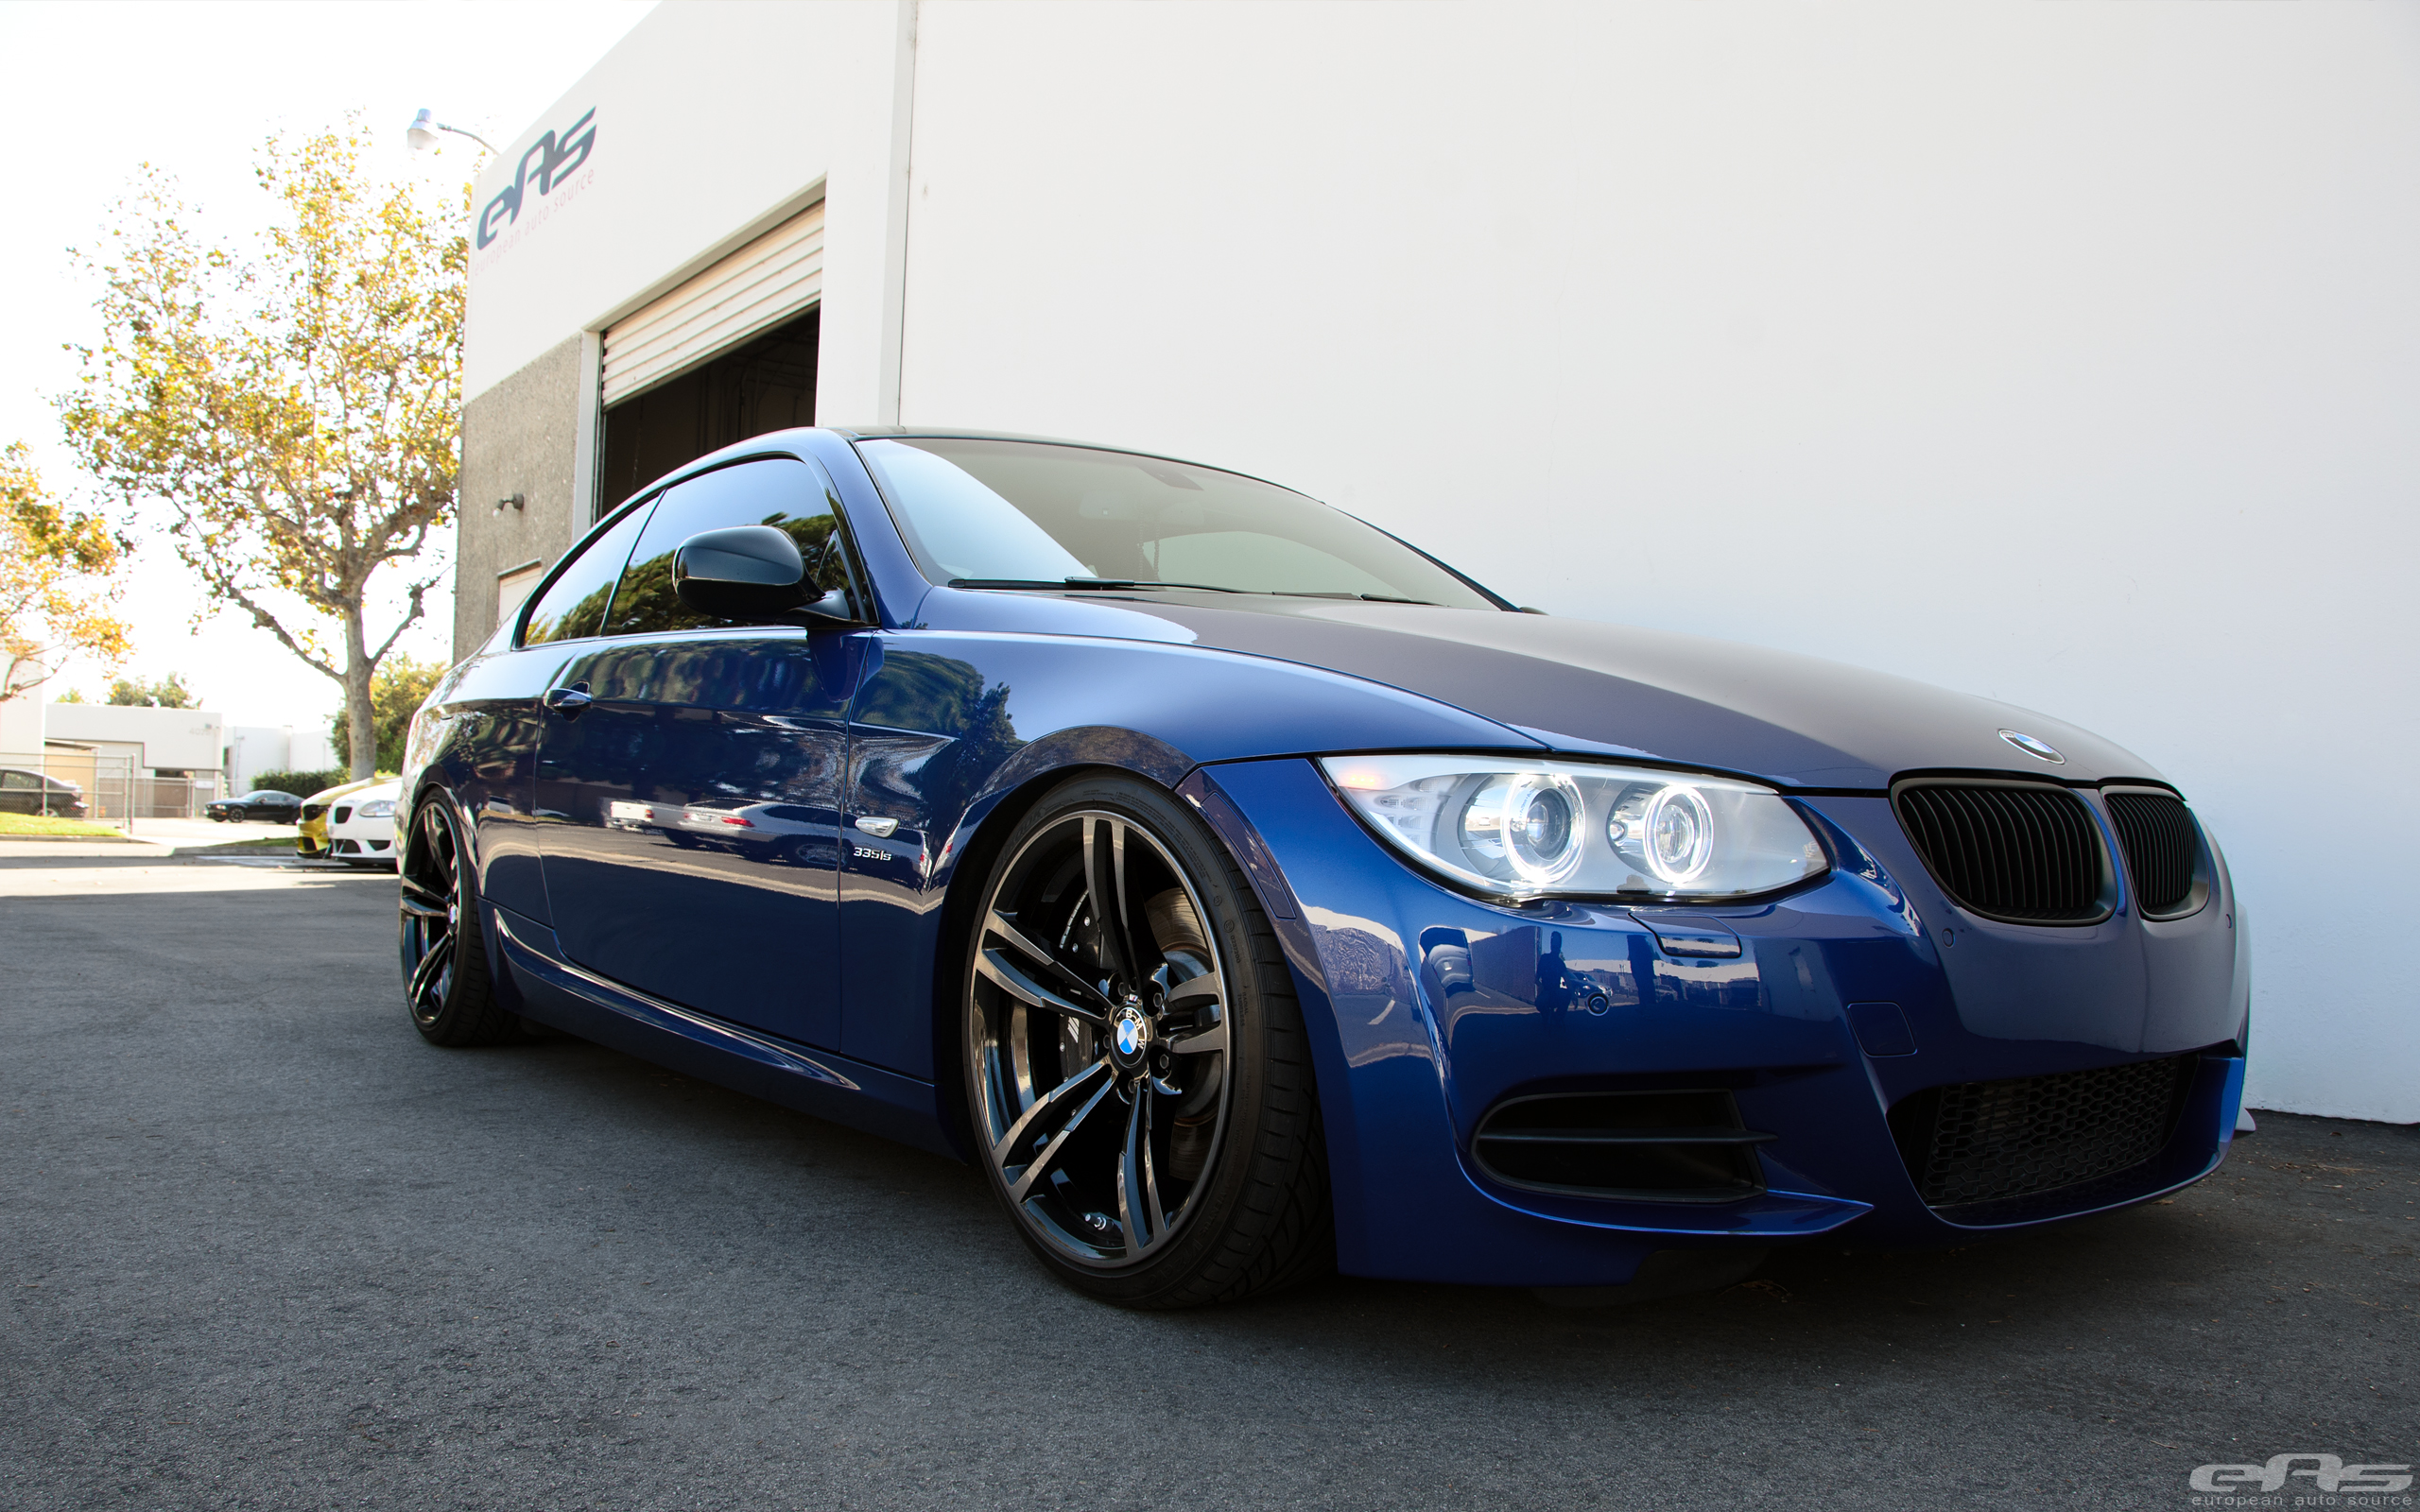 Lemans Blue E92 335is Bmw Performance Parts Amp Services